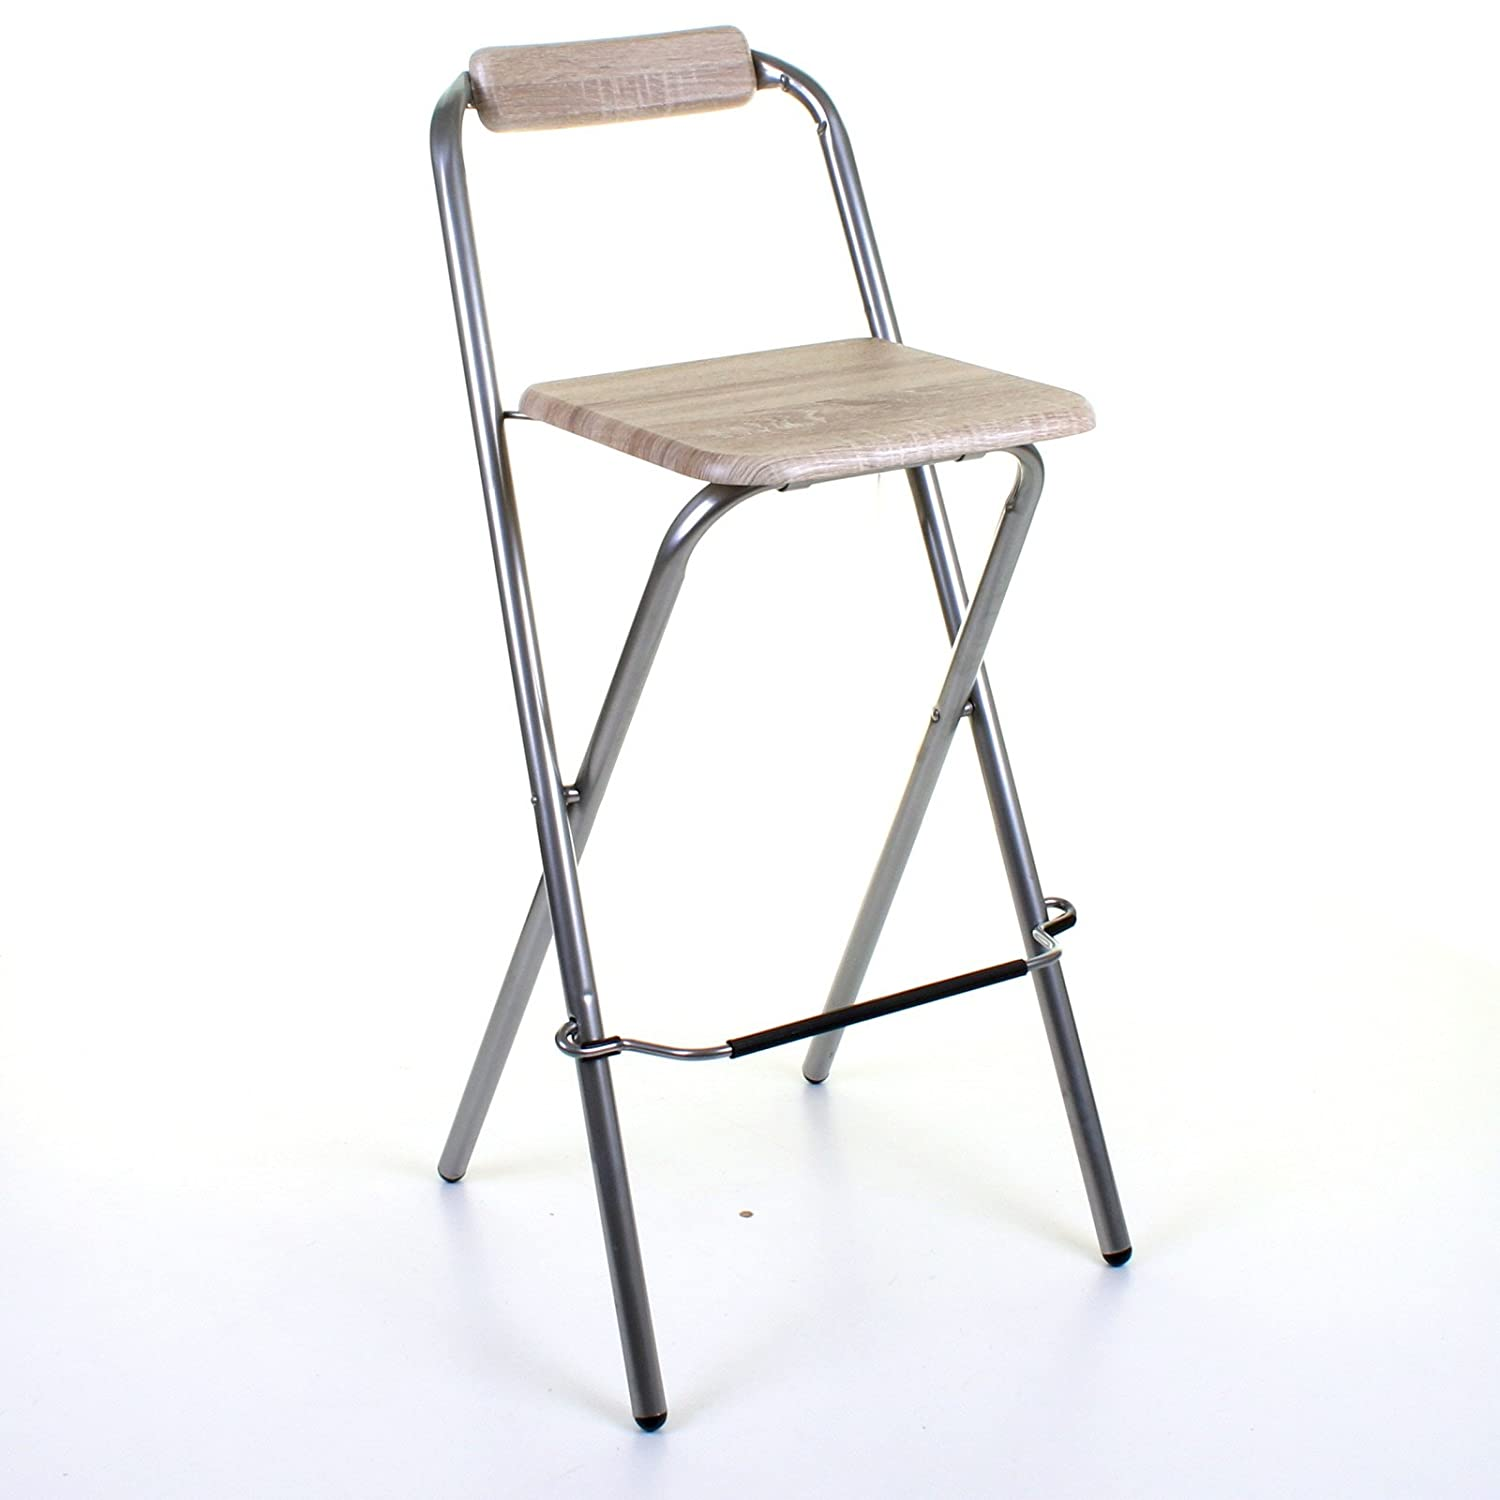 Marko Furniture Folding Wooden Bar Stool Chair Breakfast Kitchen